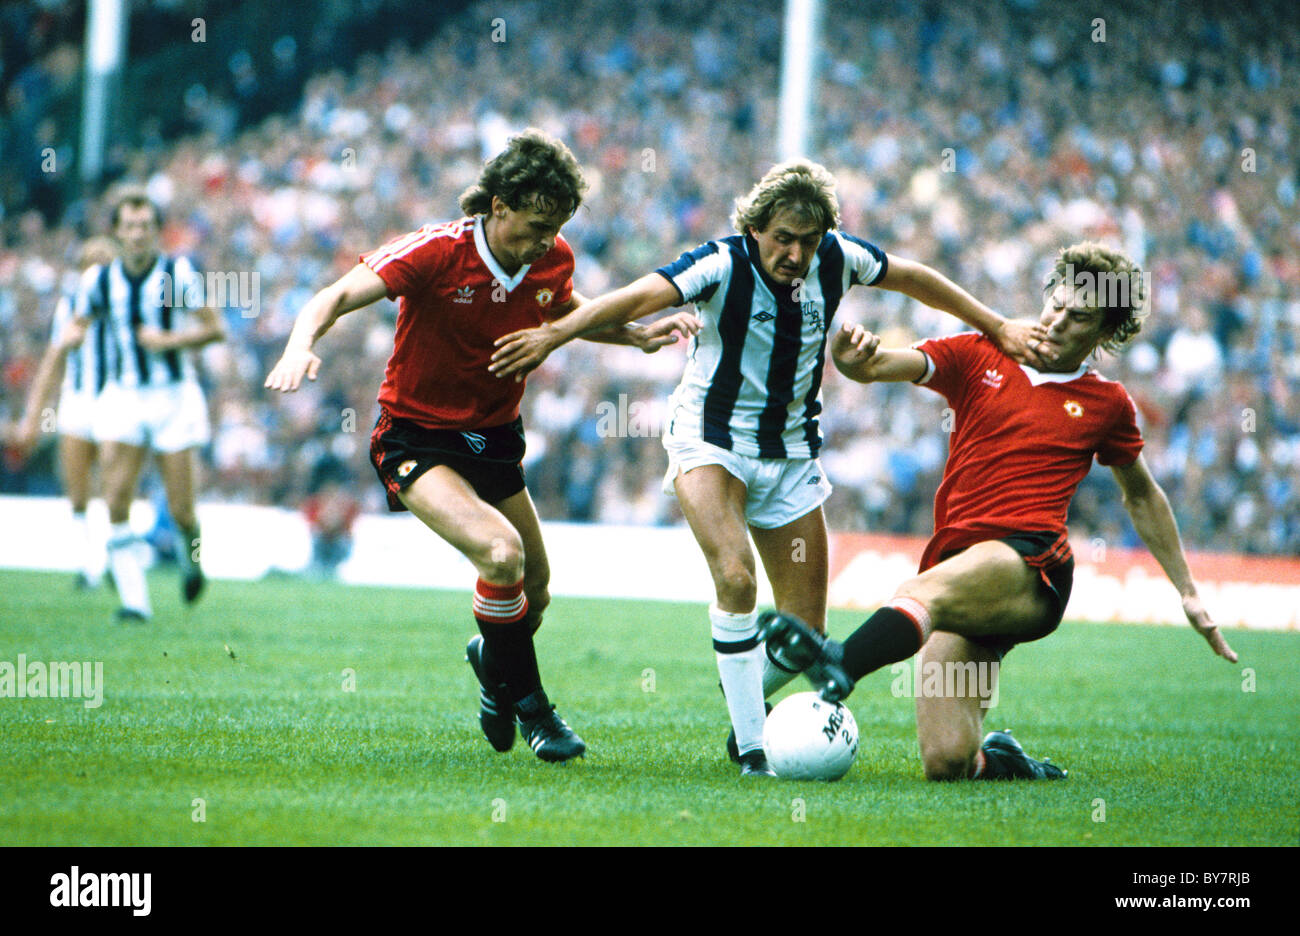 West Bromwich Albion V Manchester United Gary Owen of WBA between Mike Duxbury and Brian Robson 1980s - Stock Image